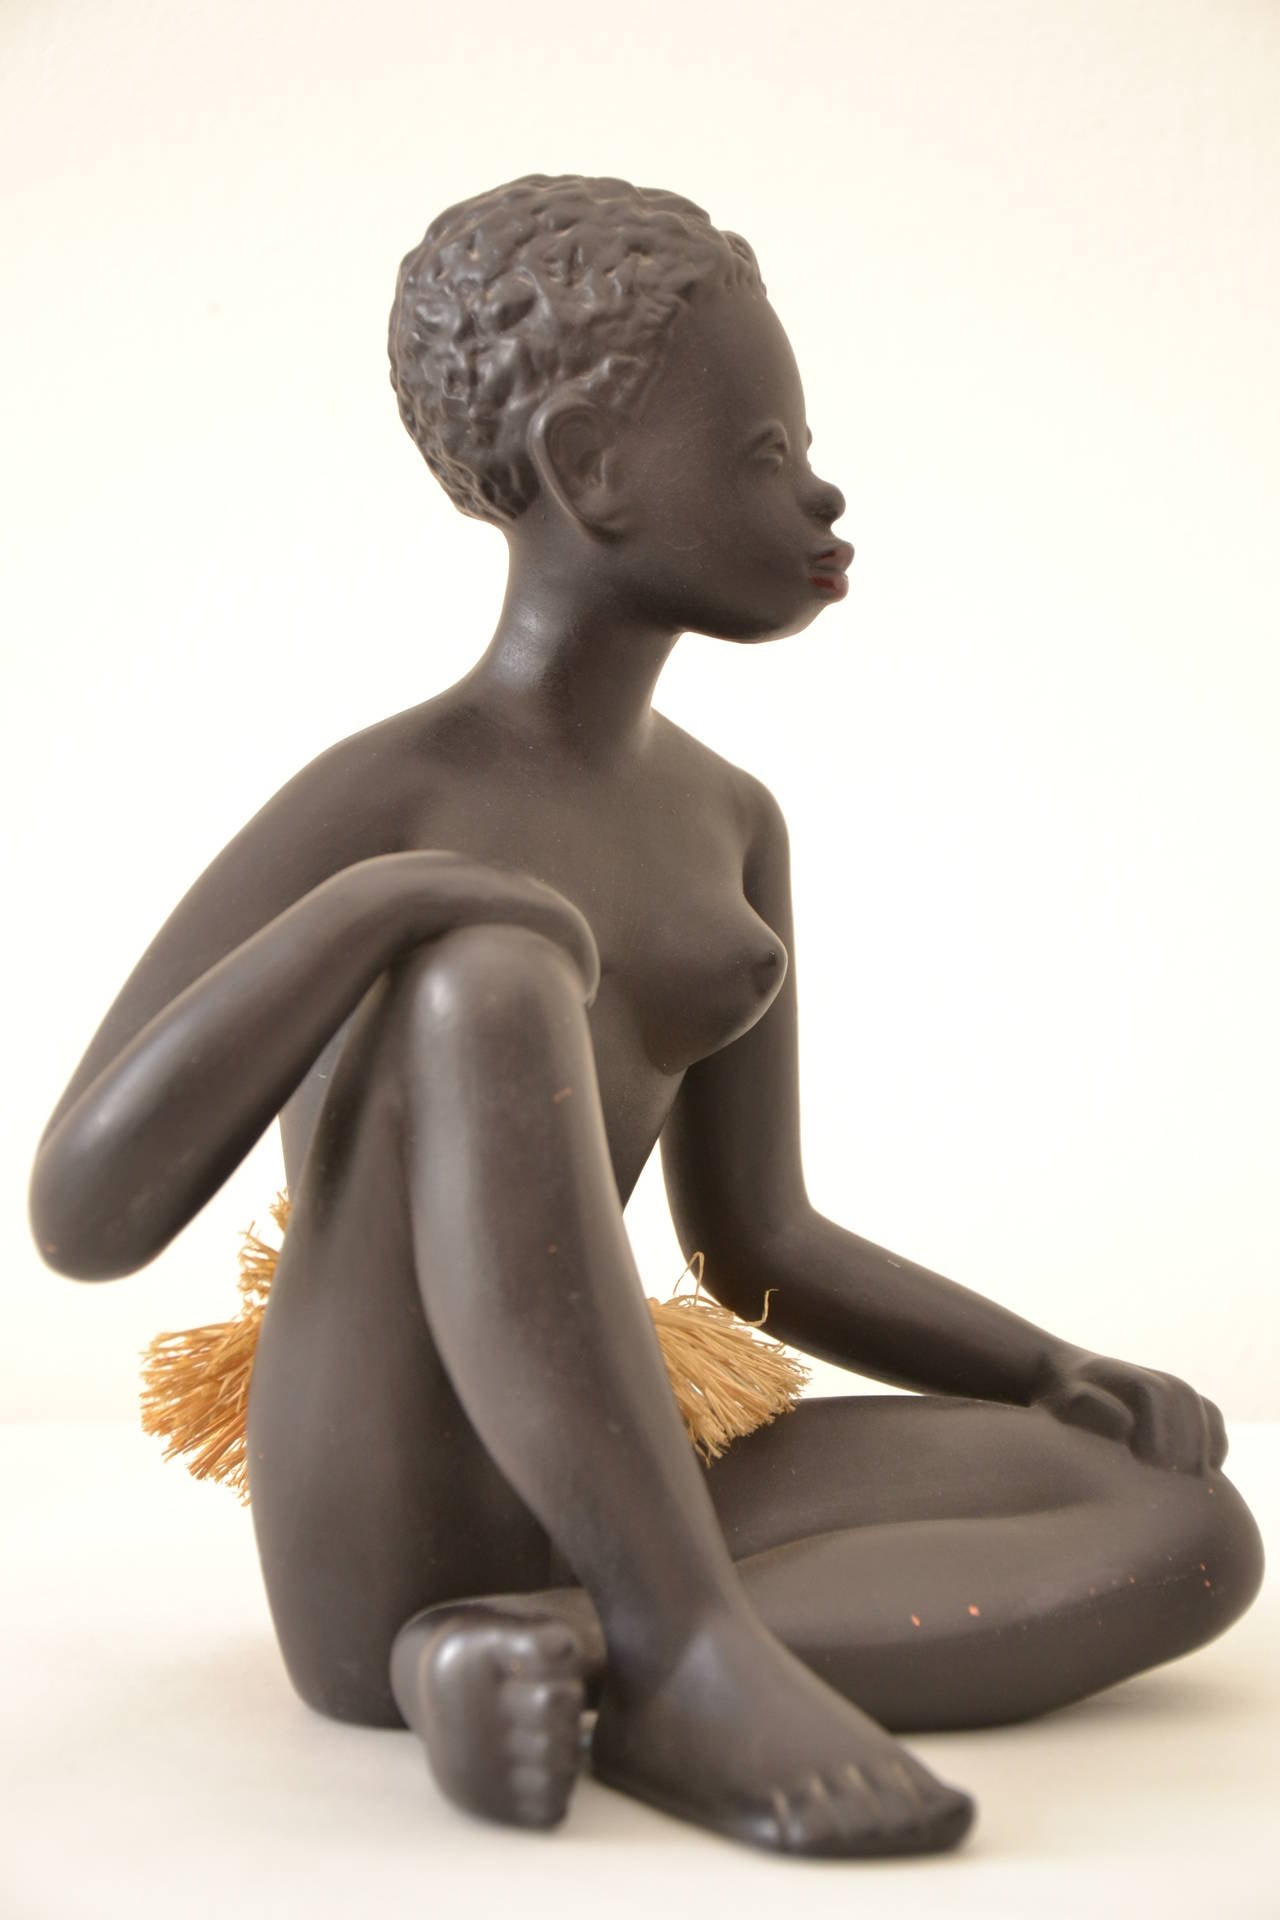 Exotic African Women Sculpture by Leopold Anzengruber, Vienna 1950s 2